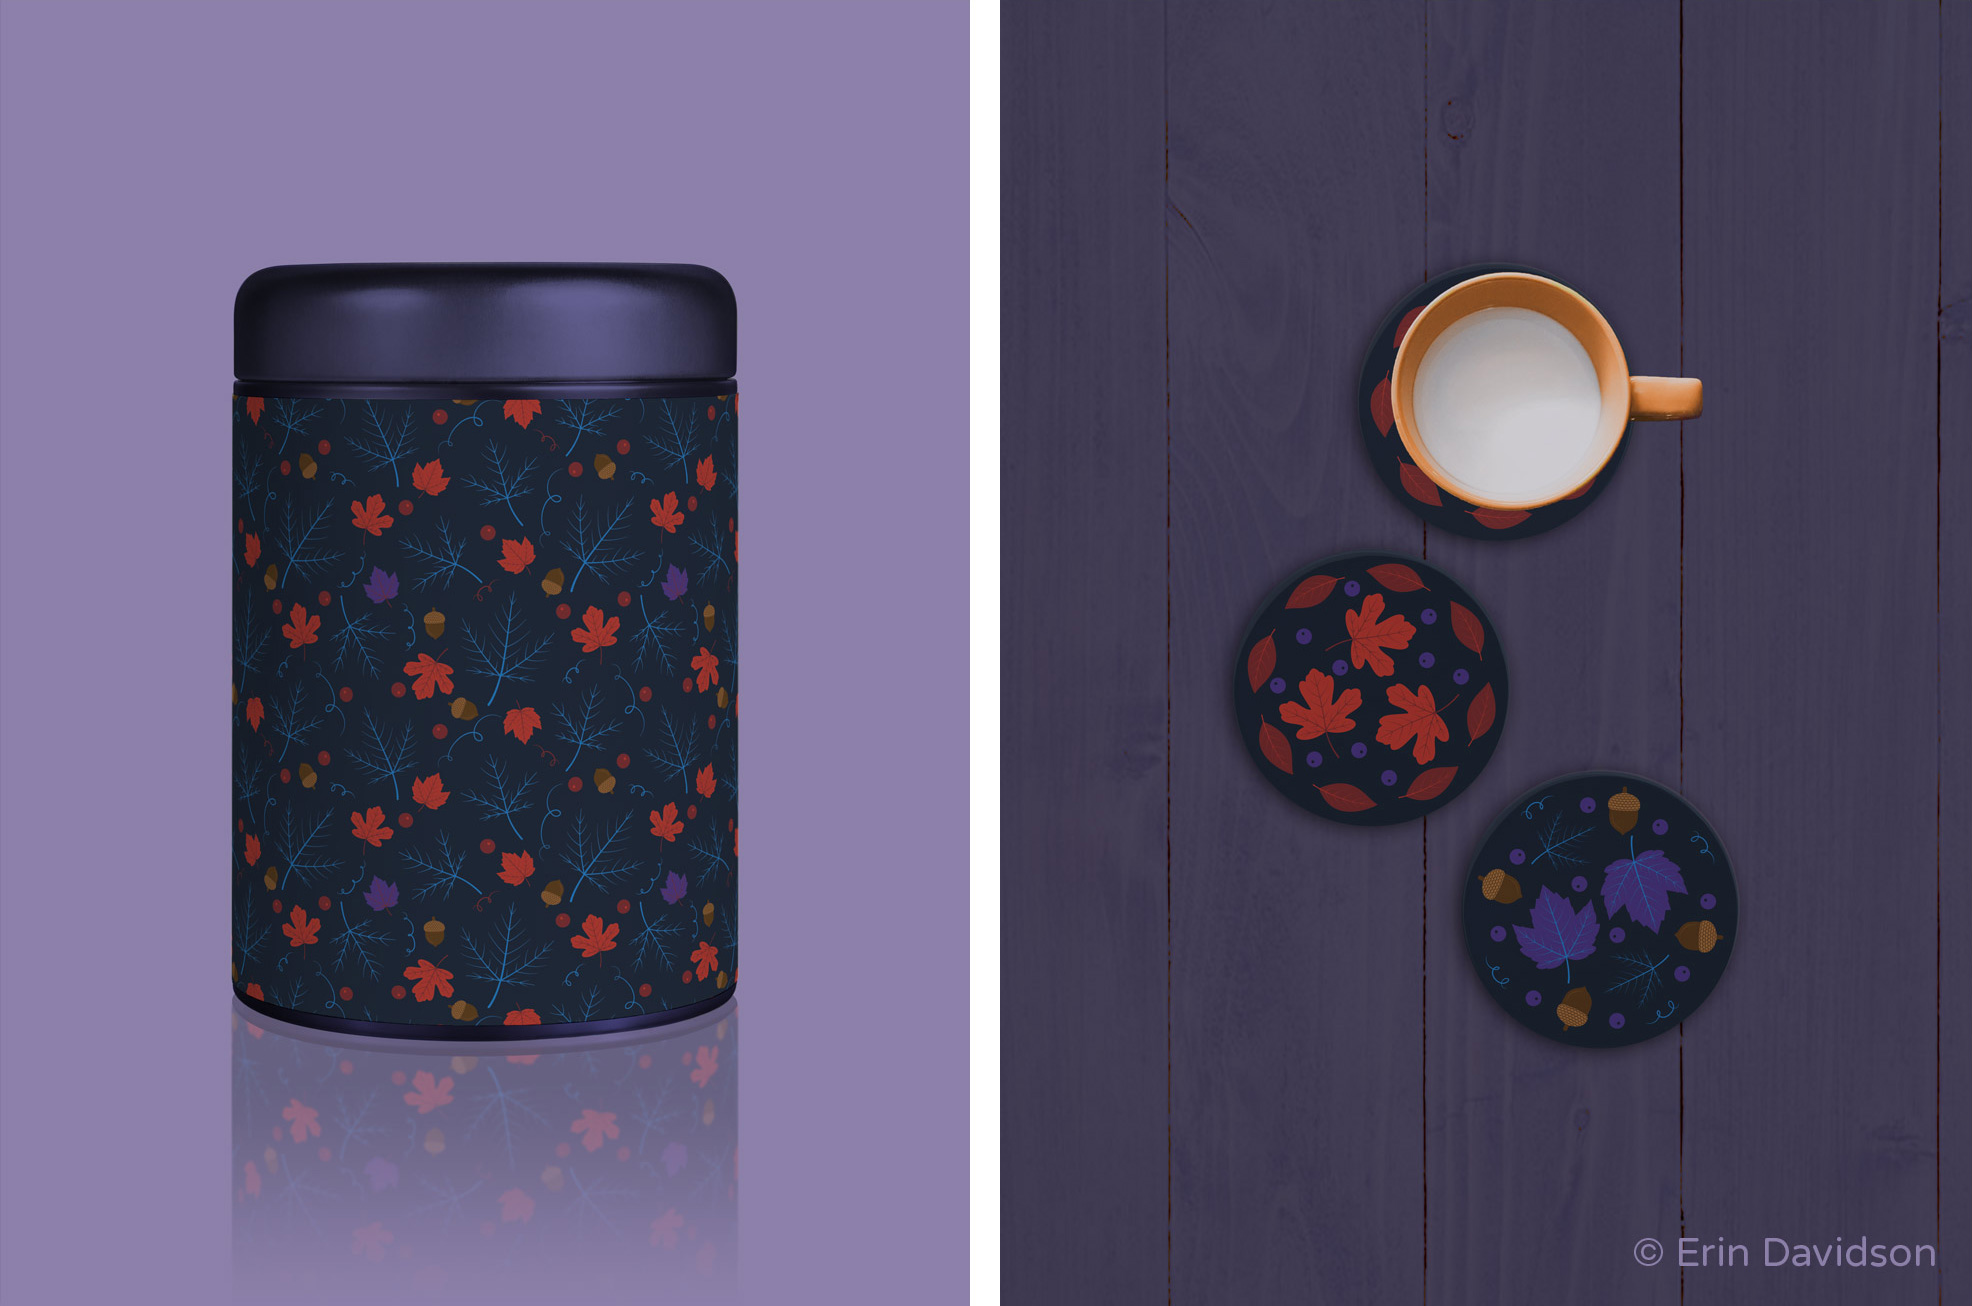 2 product mockup photos placed side by side. 1st photo shows a secondary print applied to a dark purple tin canister. 2nd photo depicts a flat lay shot. Spot graphics are applied to 3 ceramic coasters. A yellow mug filled with milk is placed on 1 of the coasters. Beneath the items are dark purple wooden planks.